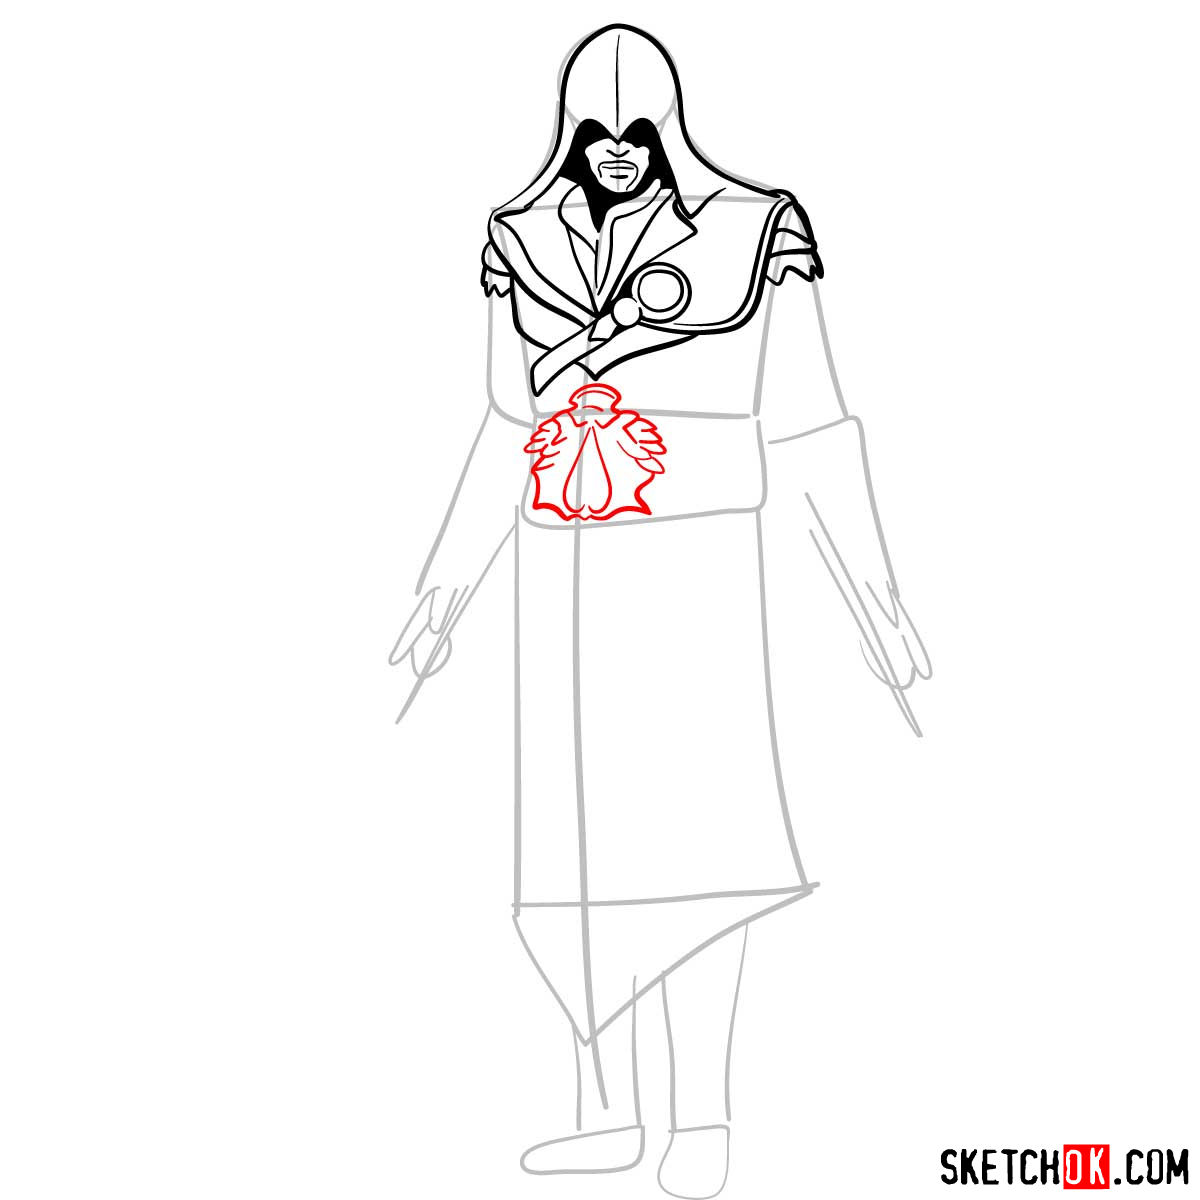 How to draw an Assassin from Assassin's Creed game - step 08